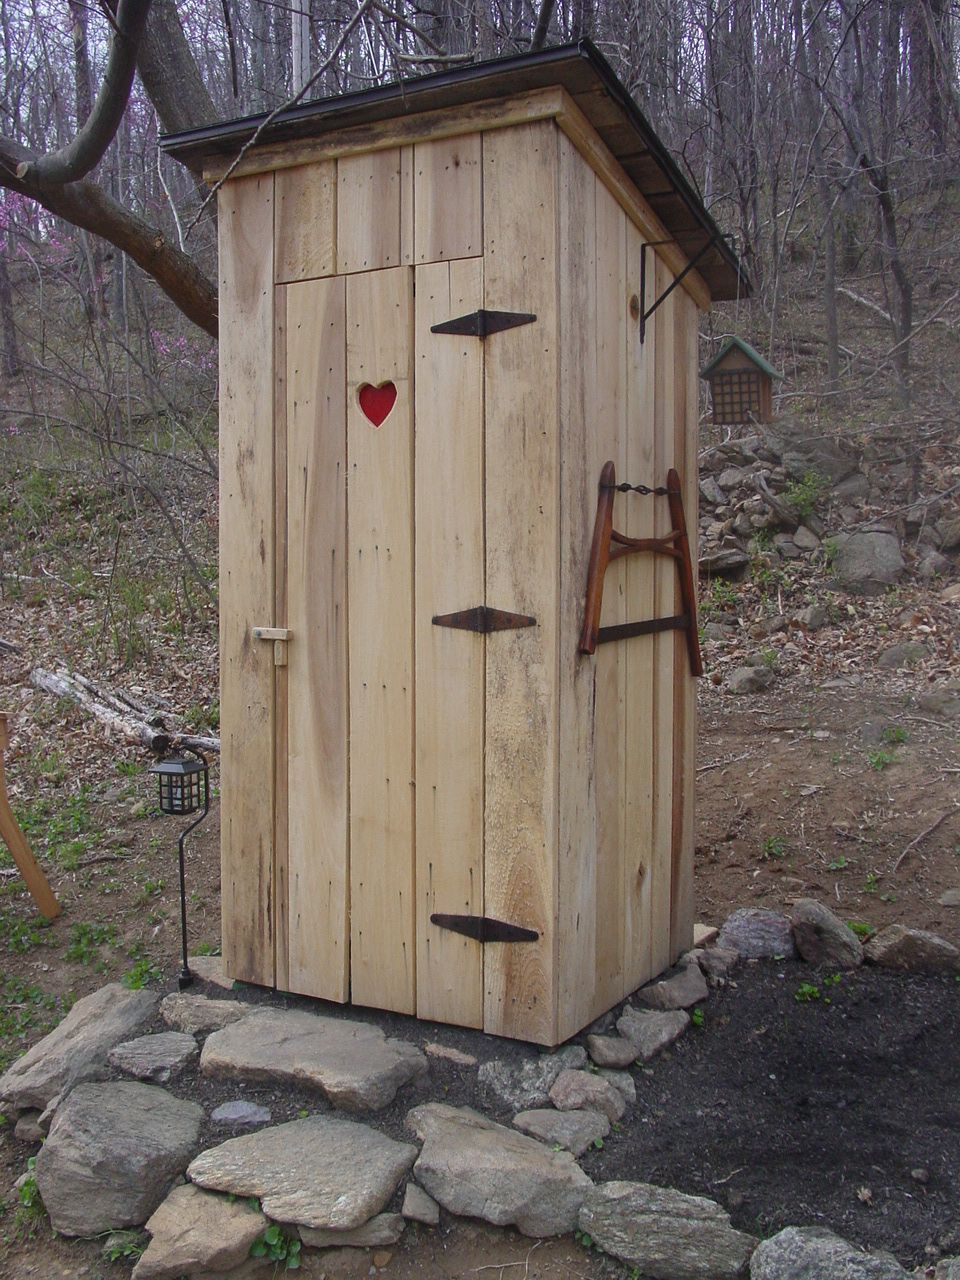 10 best images about outhouses on pinterest | sacks, outhouse